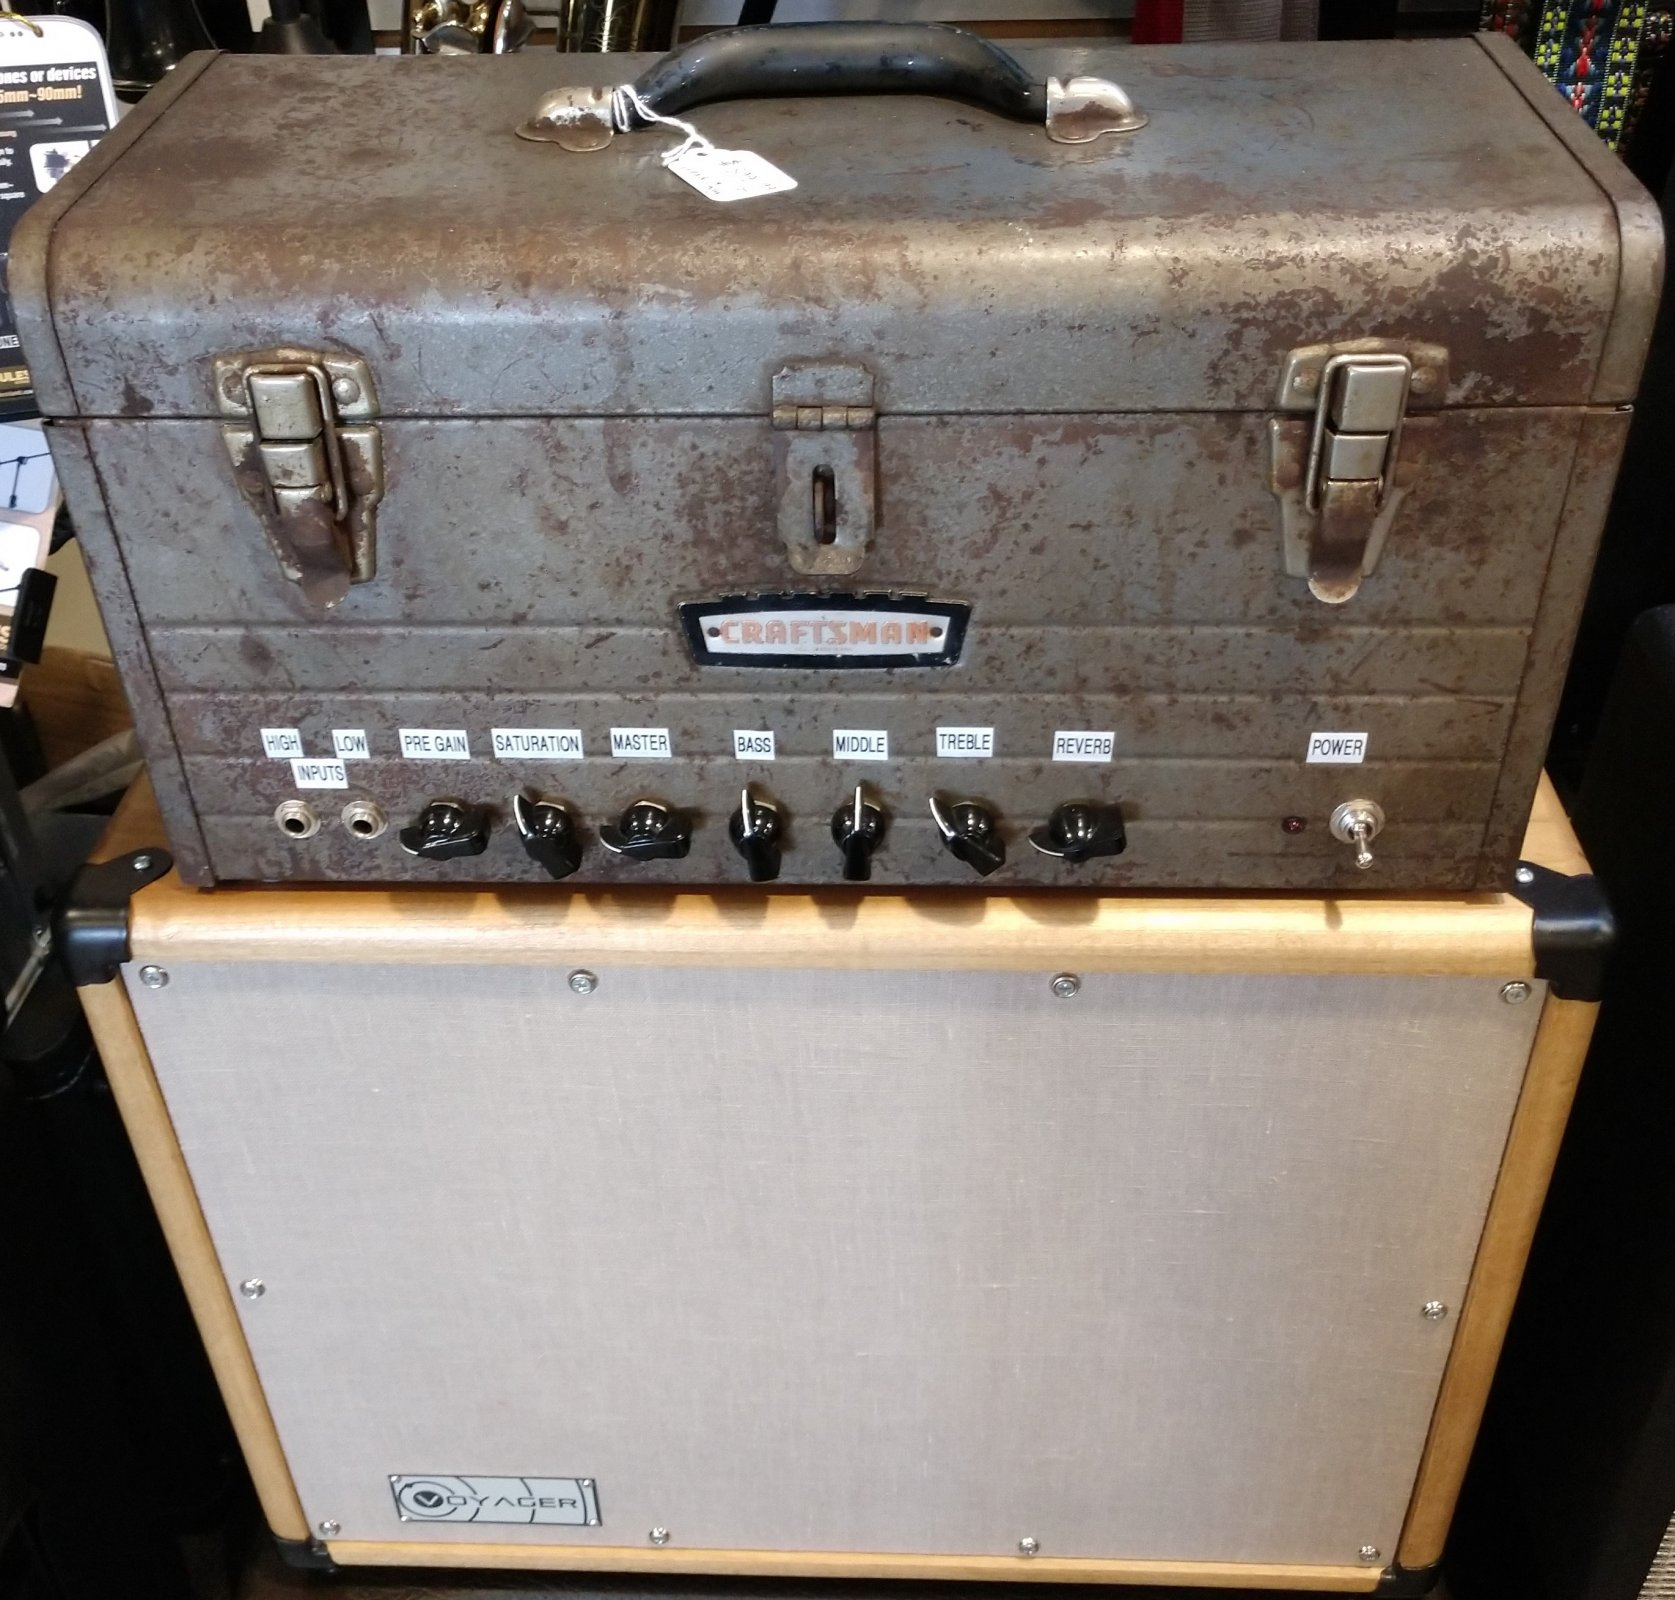 AMPLIFIER - Craftsman Toolbox Amp w/ Voyager 112 Cab; 30 Watts